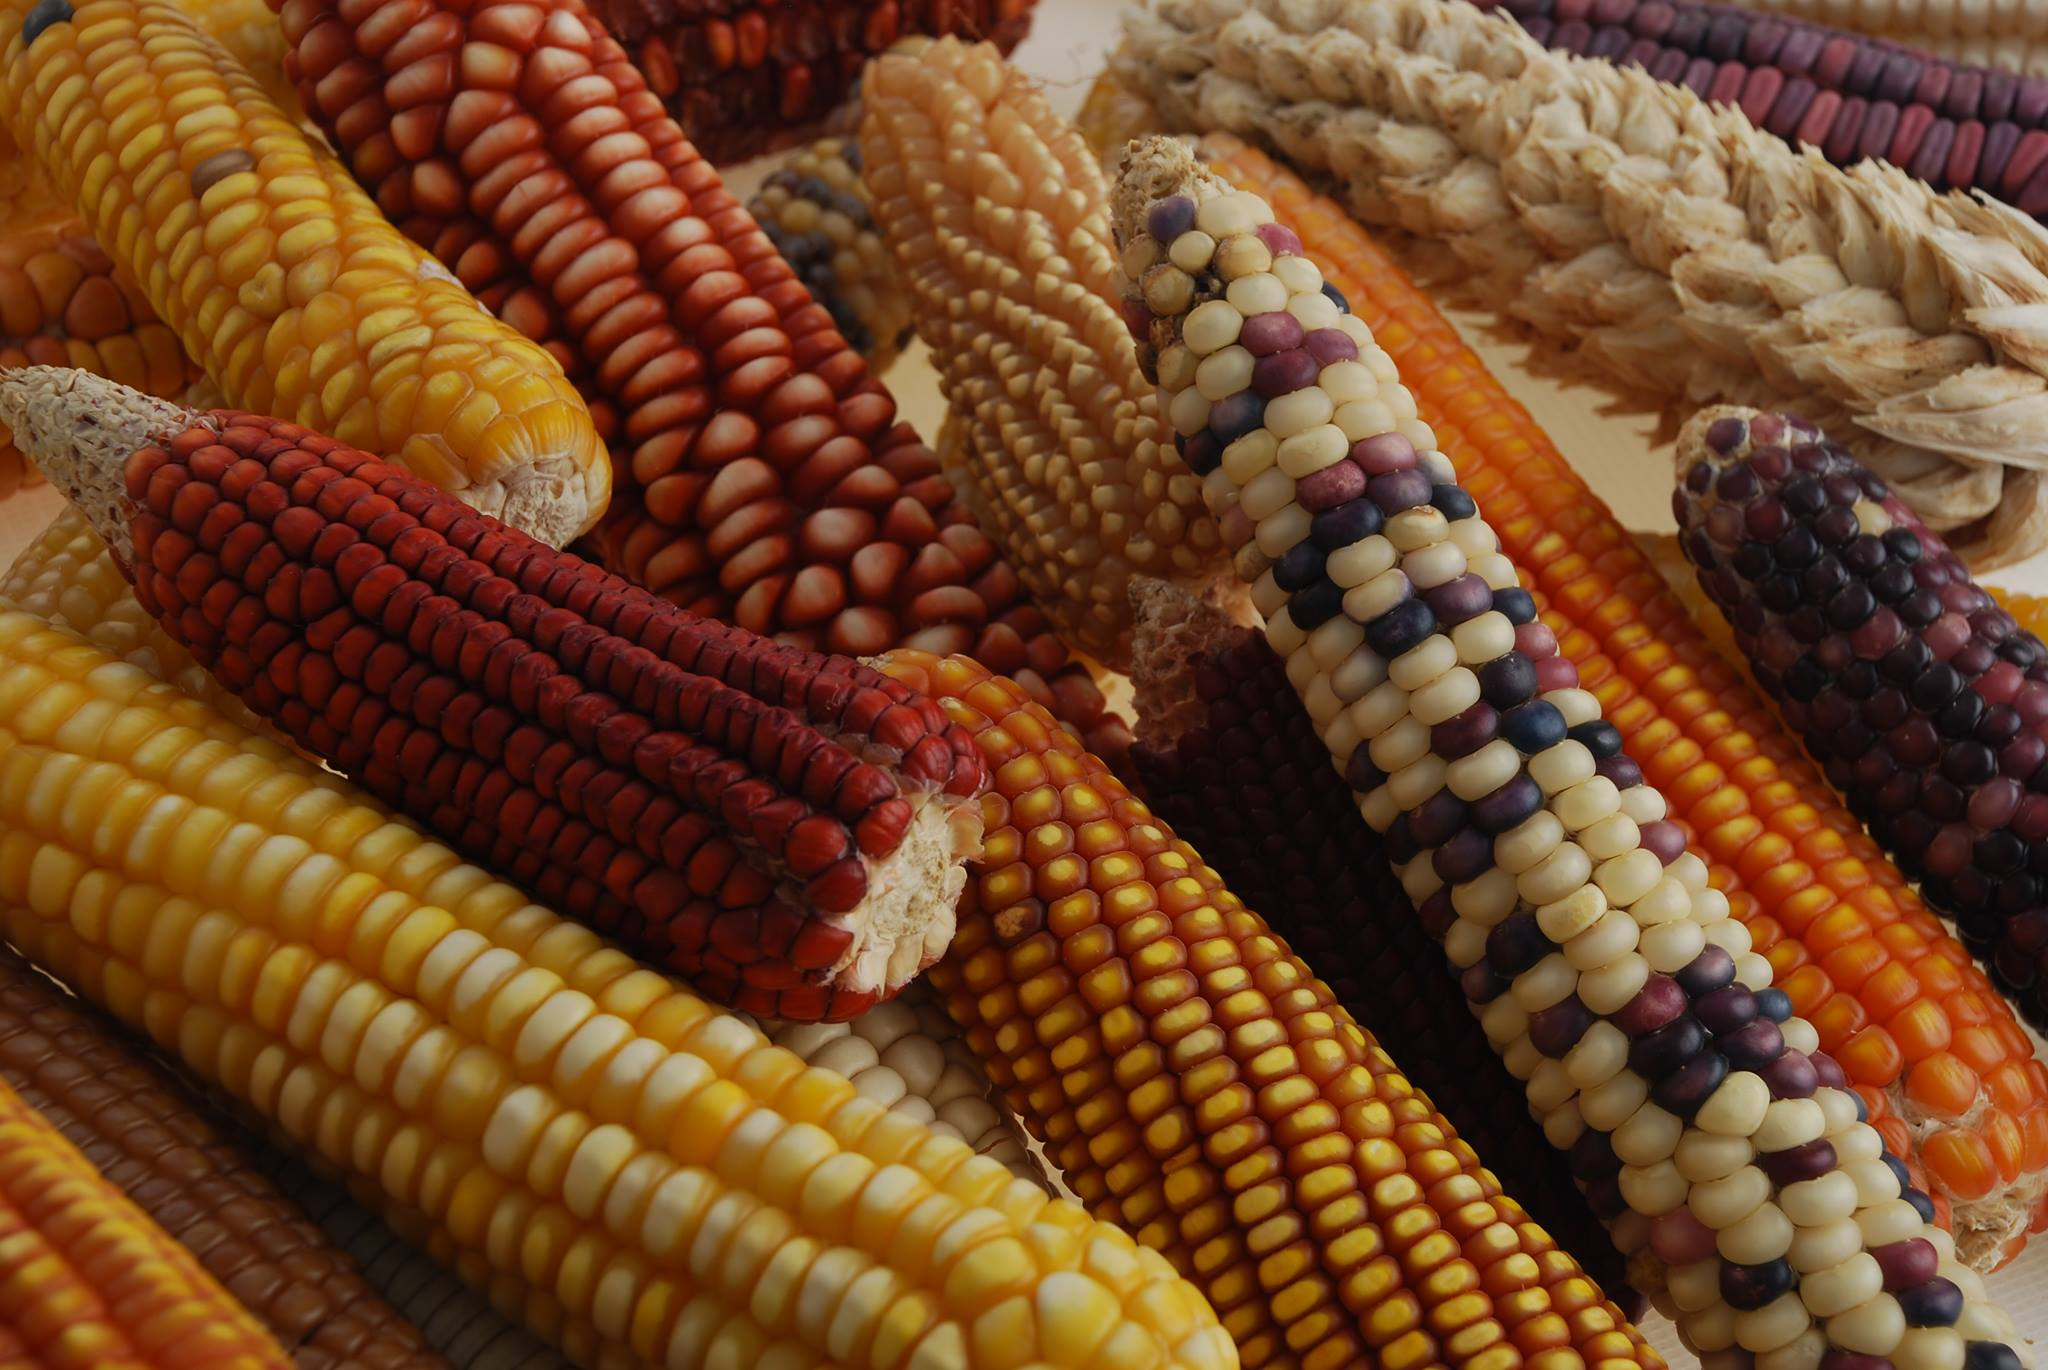 Genetically modified food controversies